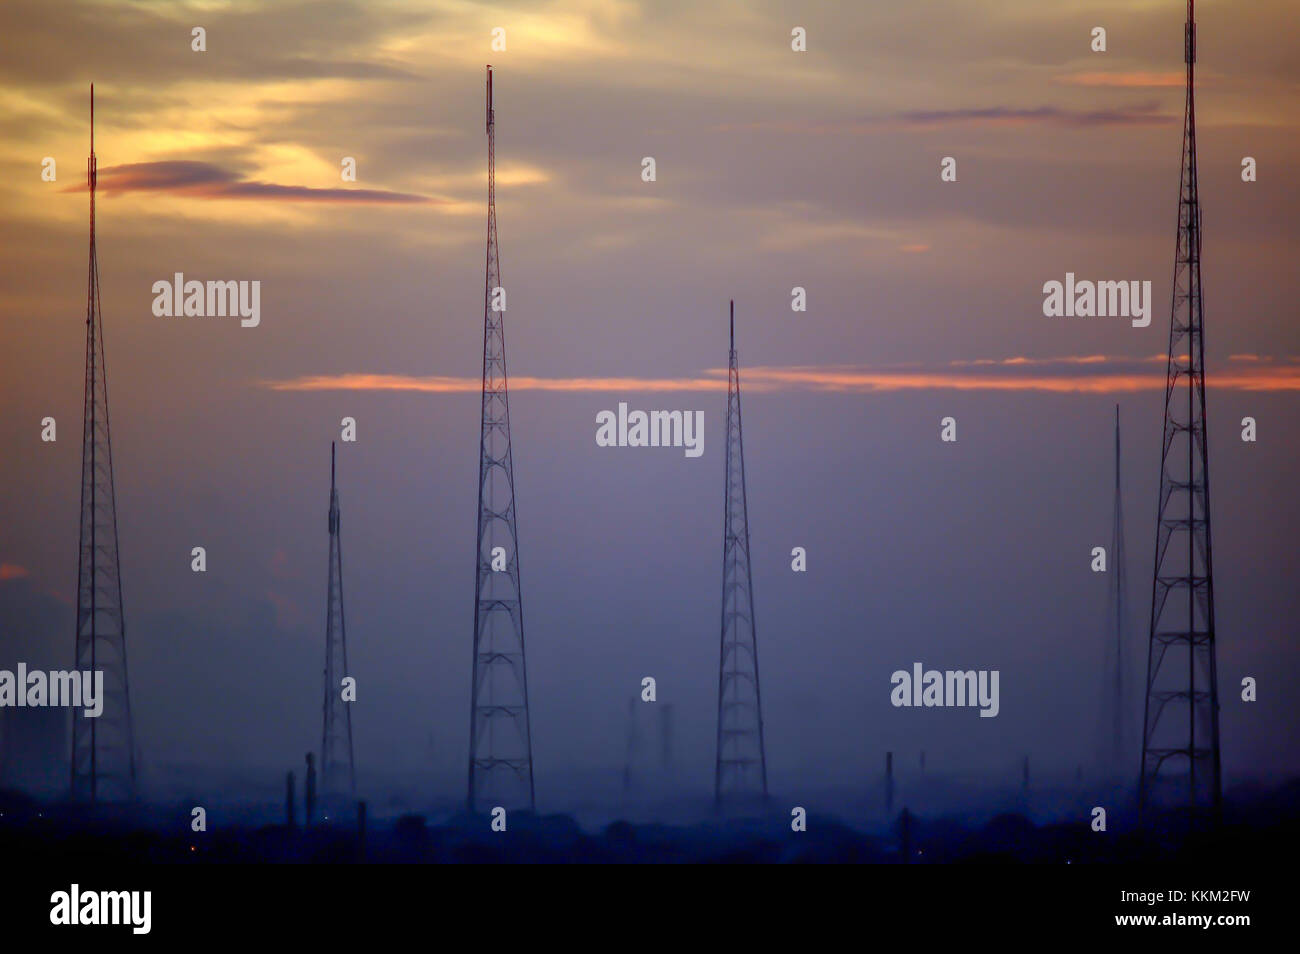 Telecommunication tower in west side of Jakarta - Stock Image